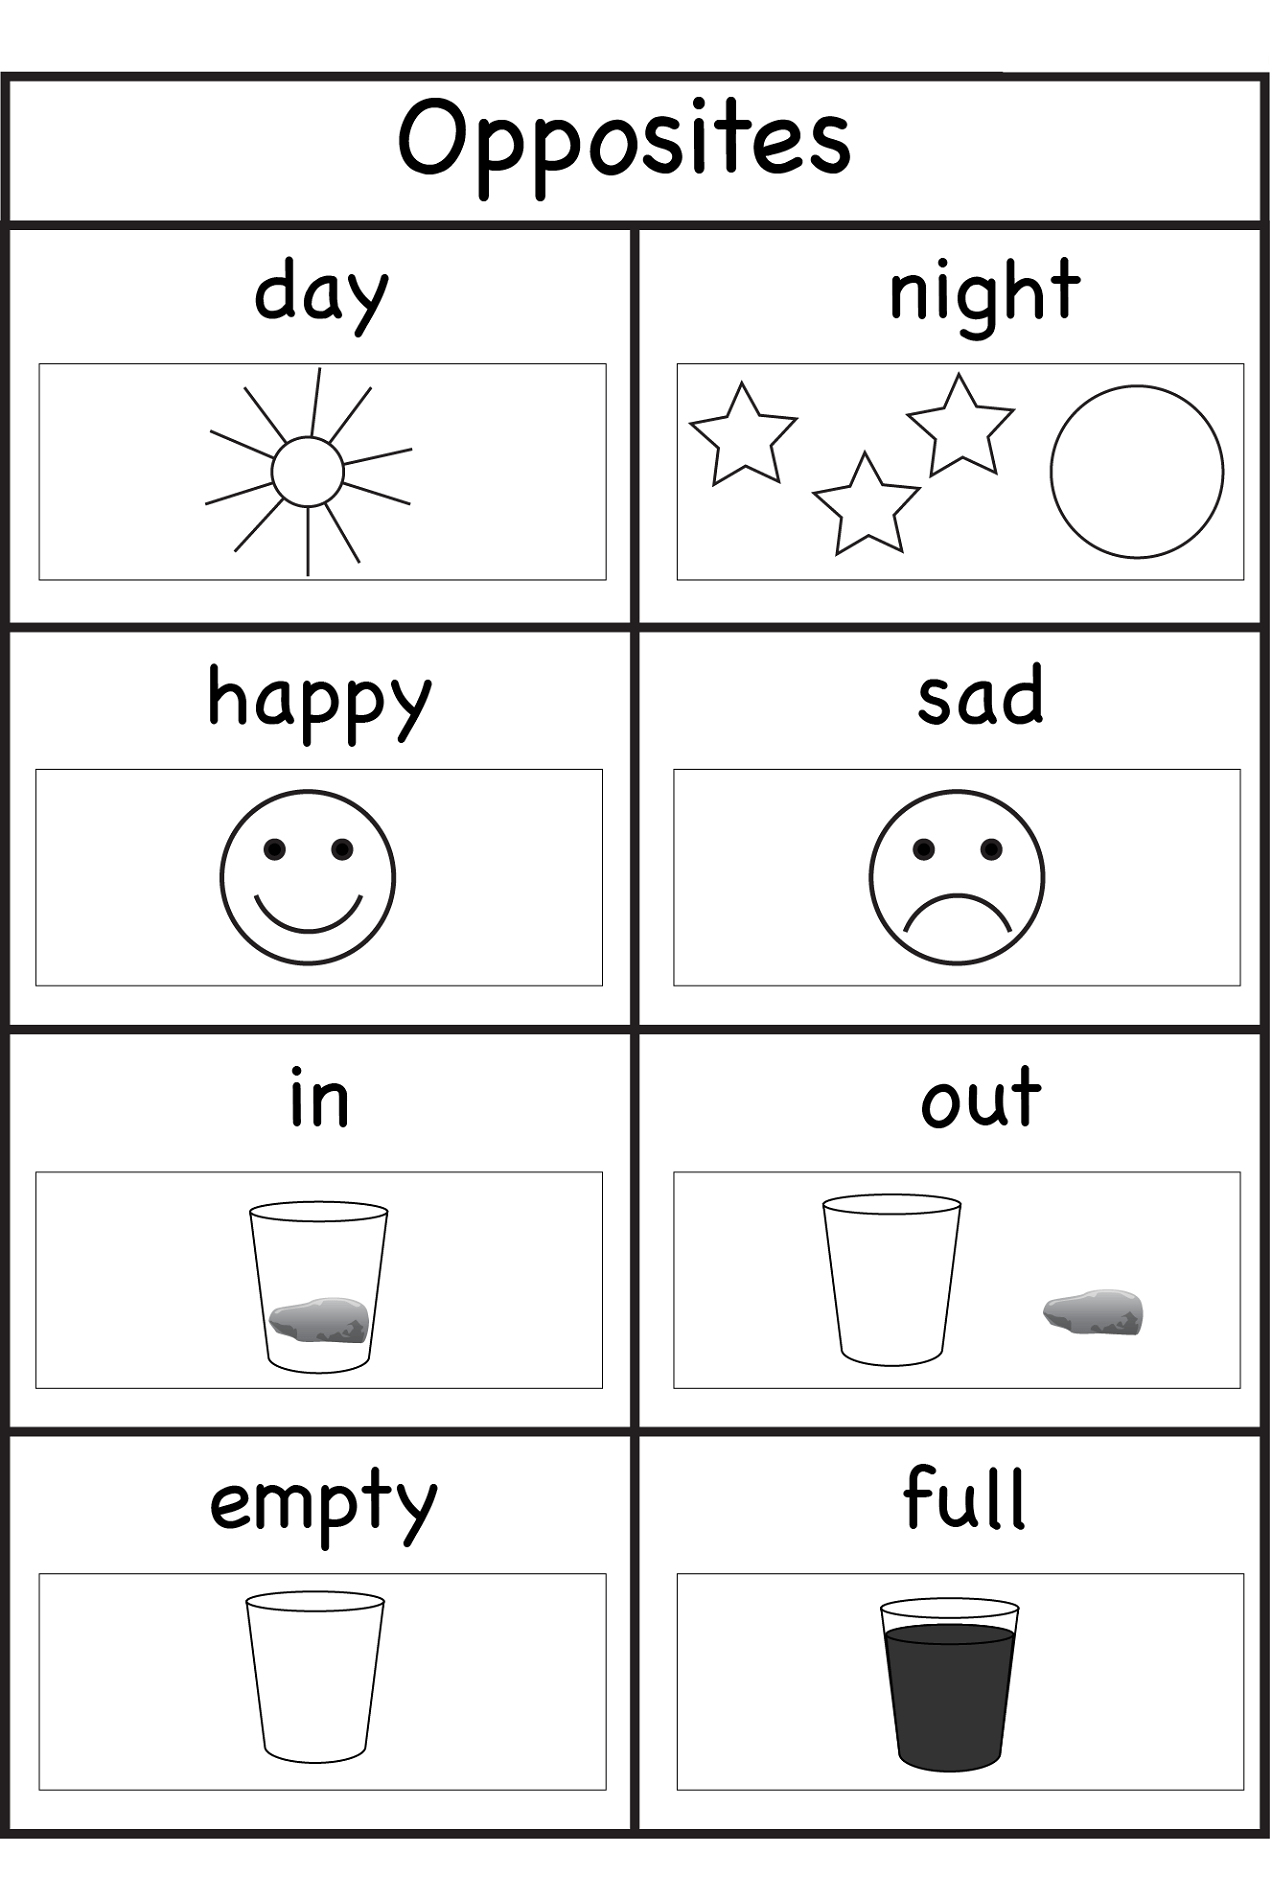 Free Printable Activities For 6 Year Olds – Jowo - Free Printable Activities For 6 Year Olds